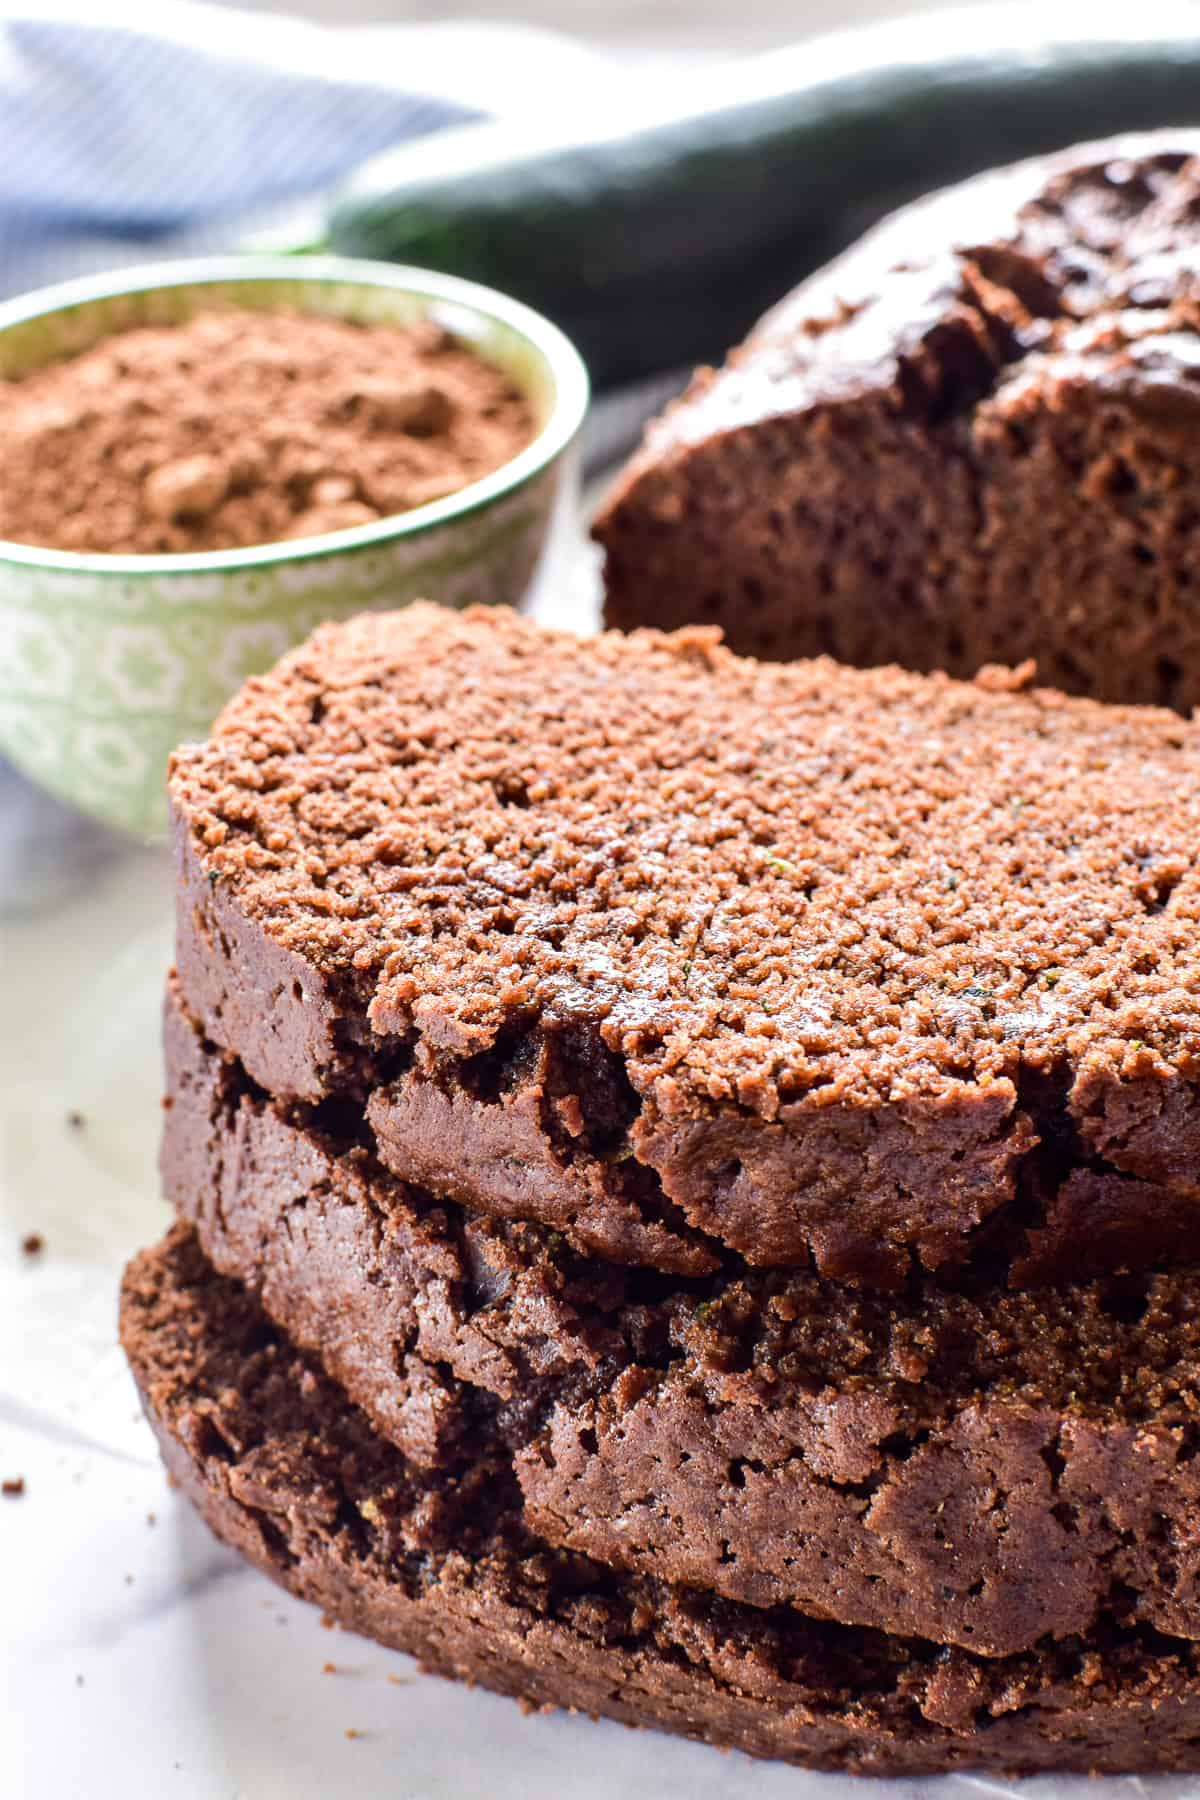 3 slices of Chocolate Zucchini Bread in a stack